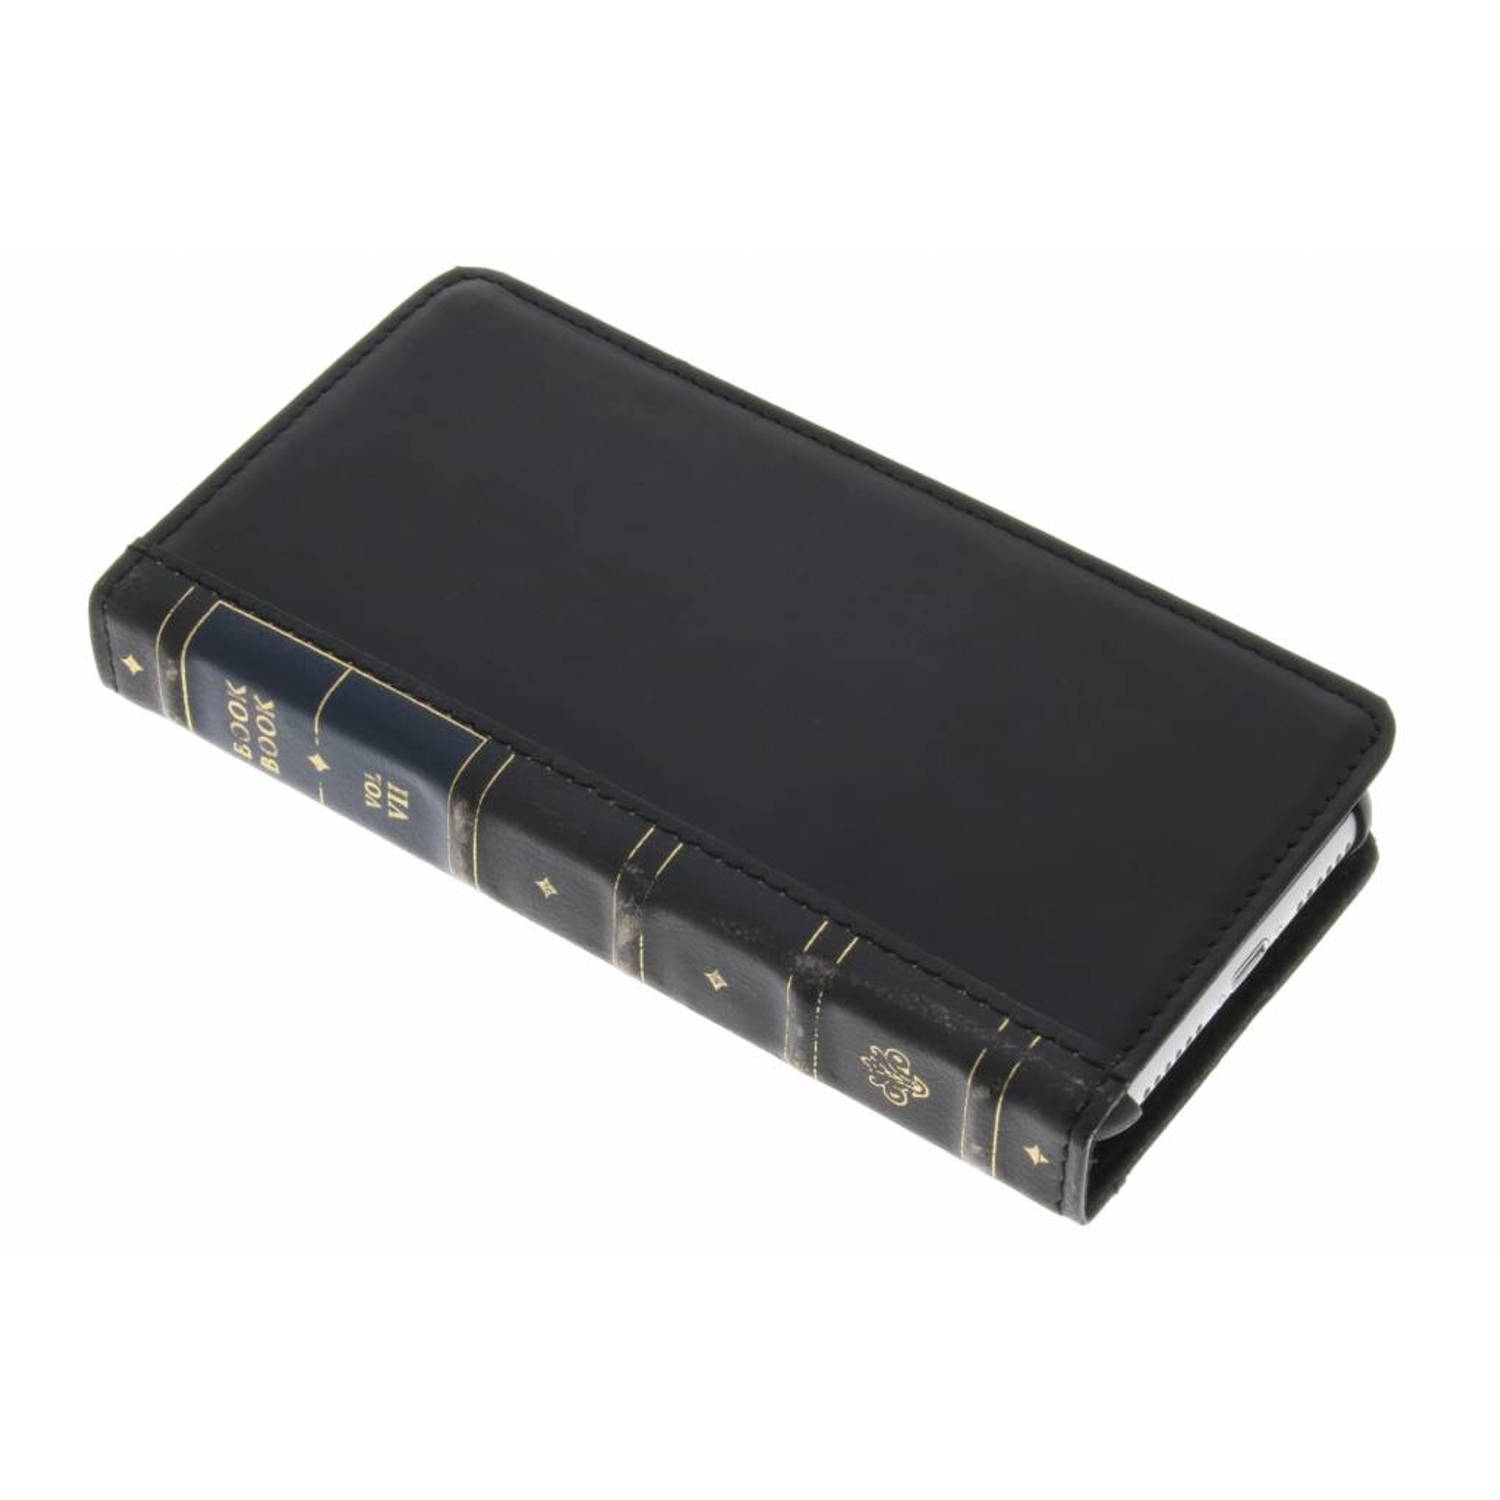 Zwarte BookBook Case voor de iPhone 8 / 7